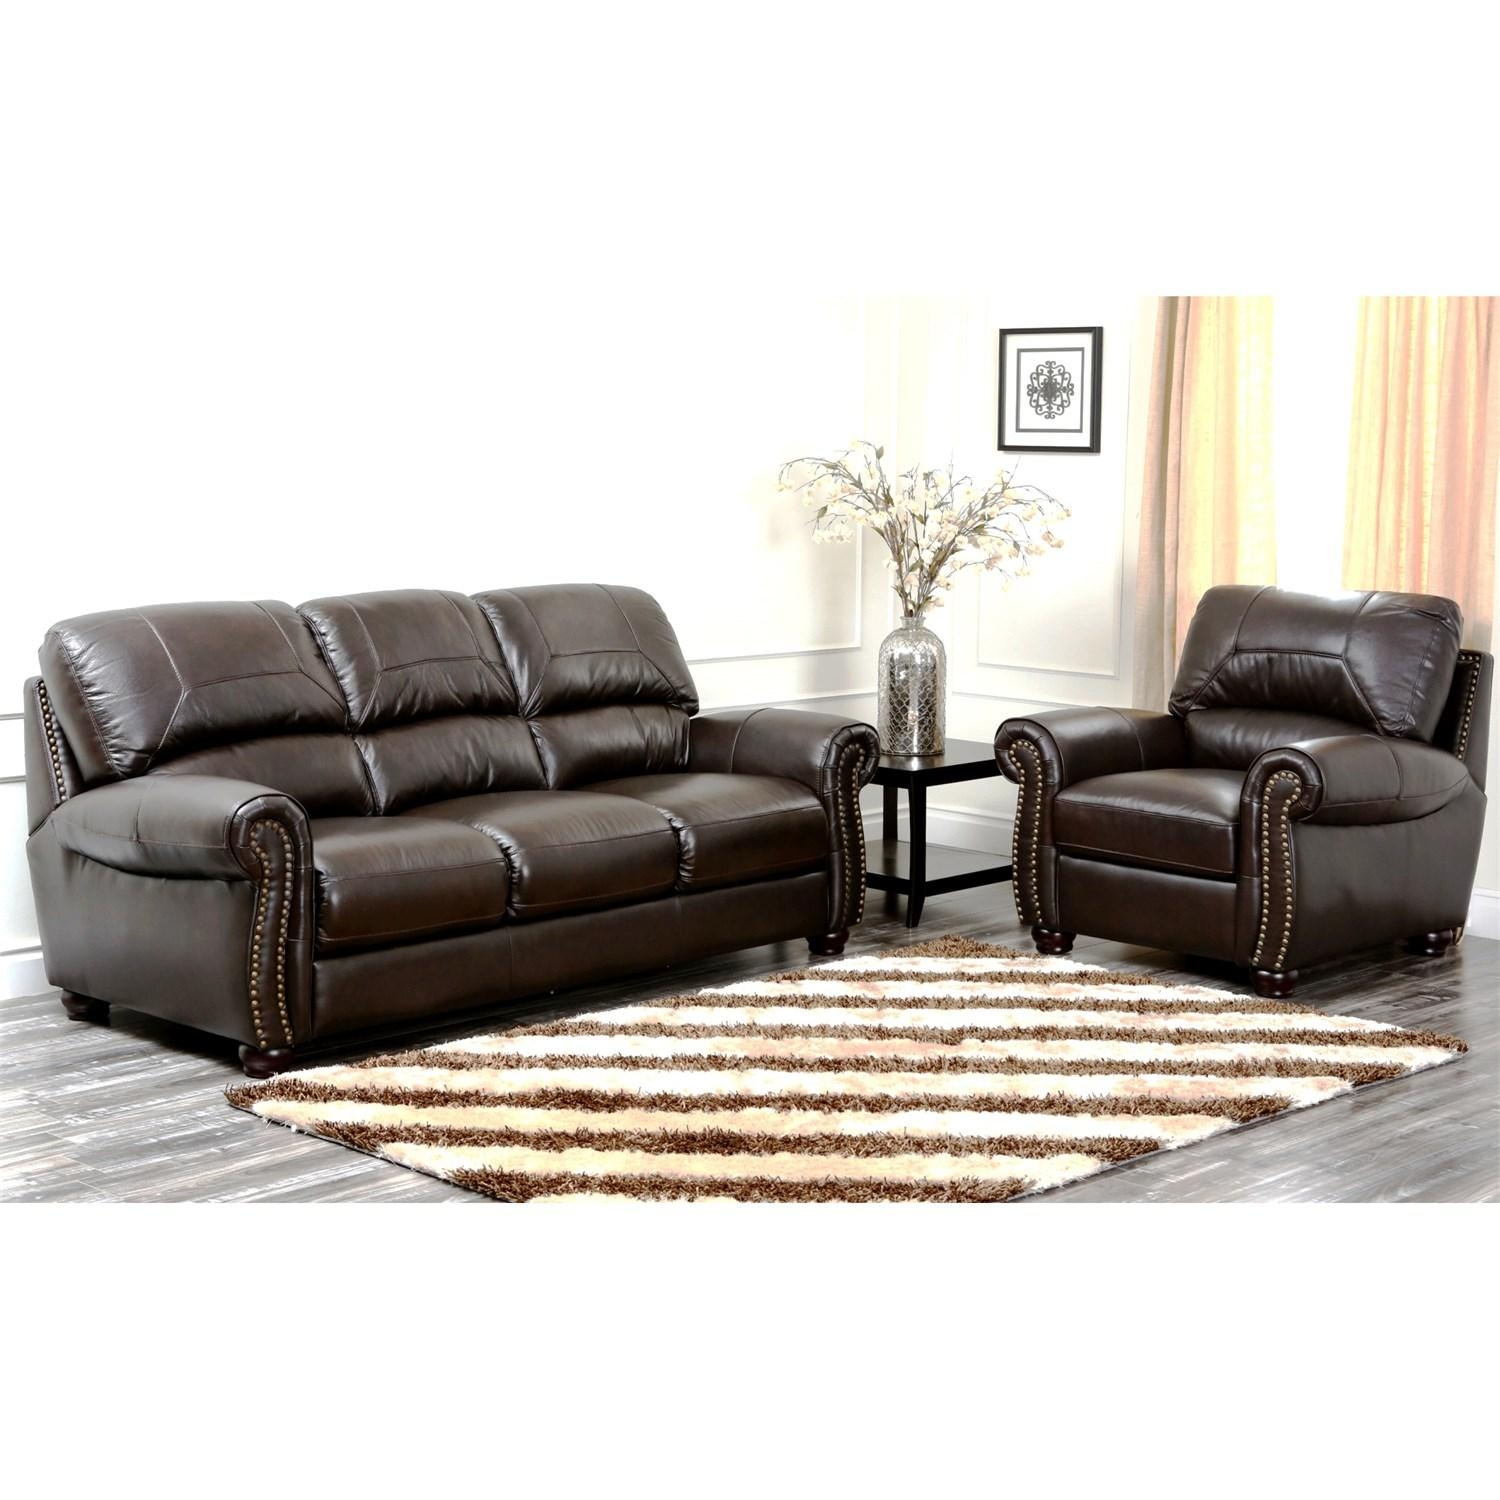 Abbyson Living Ci N350 Brn 3/1 Monaco Italian Leather Sofa And For Abbyson Sofas (View 18 of 20)